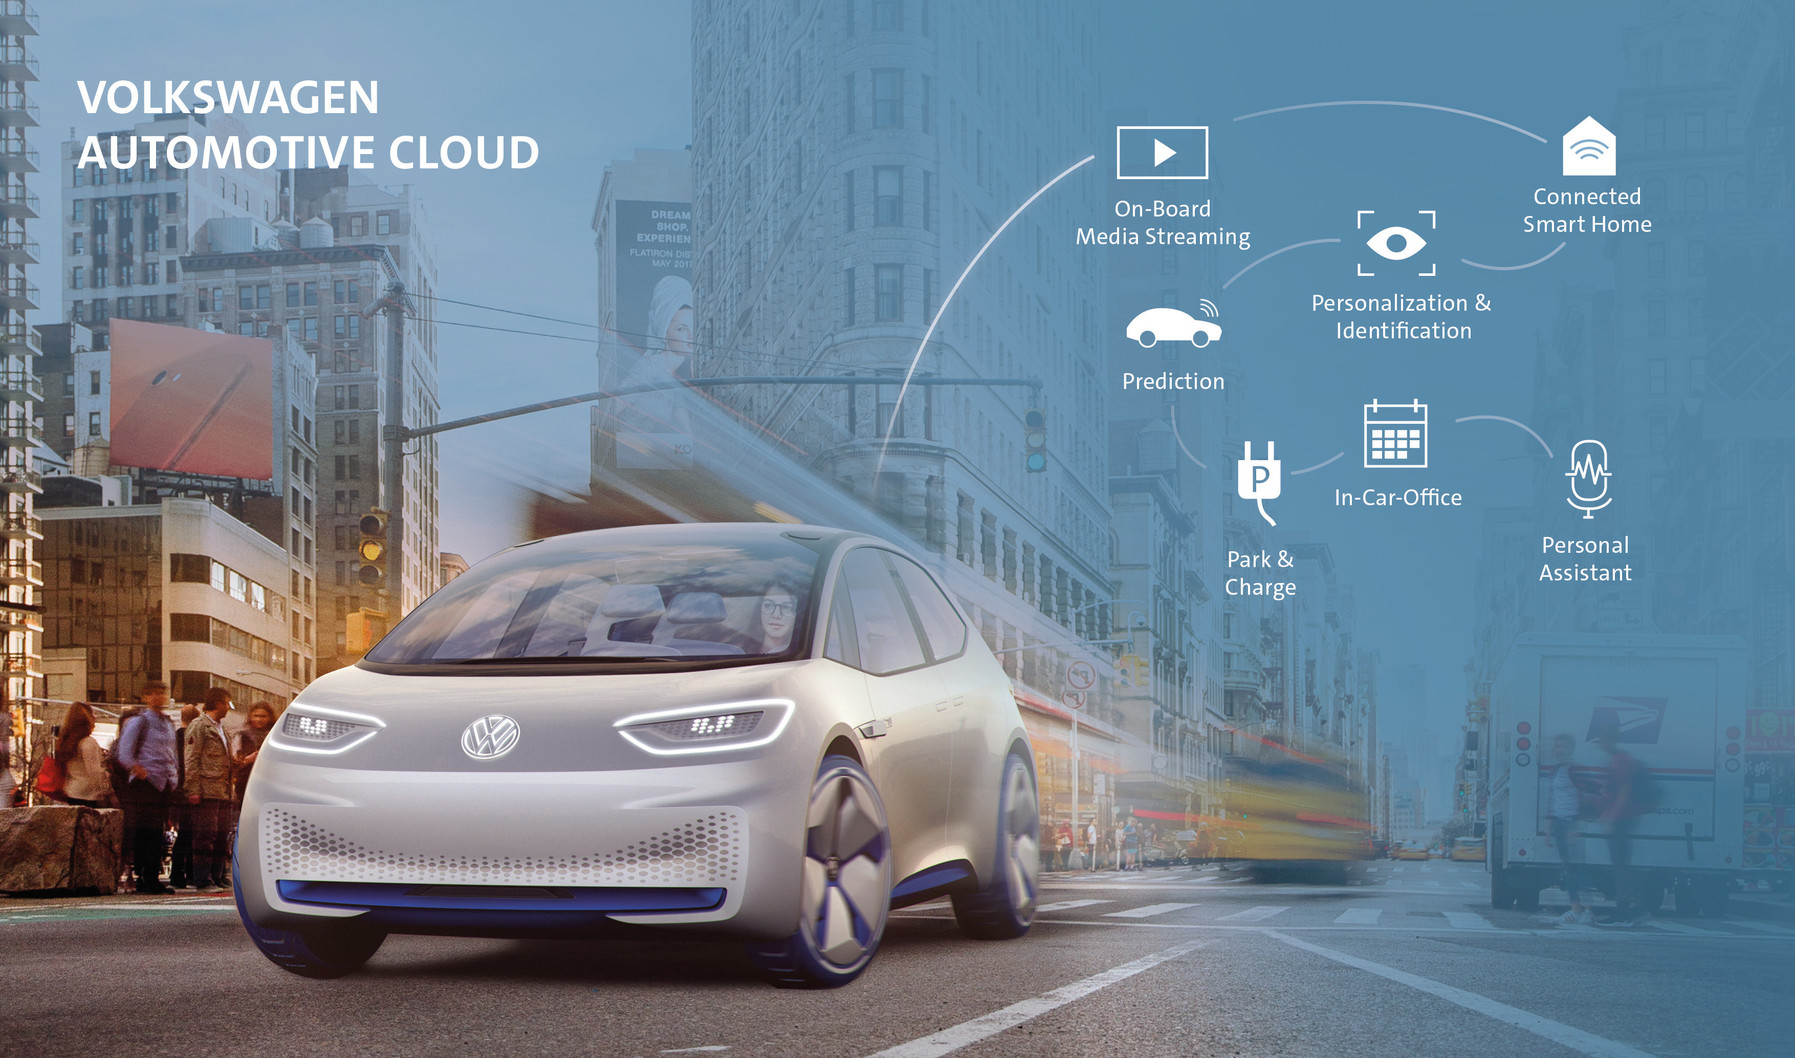 VW partners with Microsoft to put cars in cloud